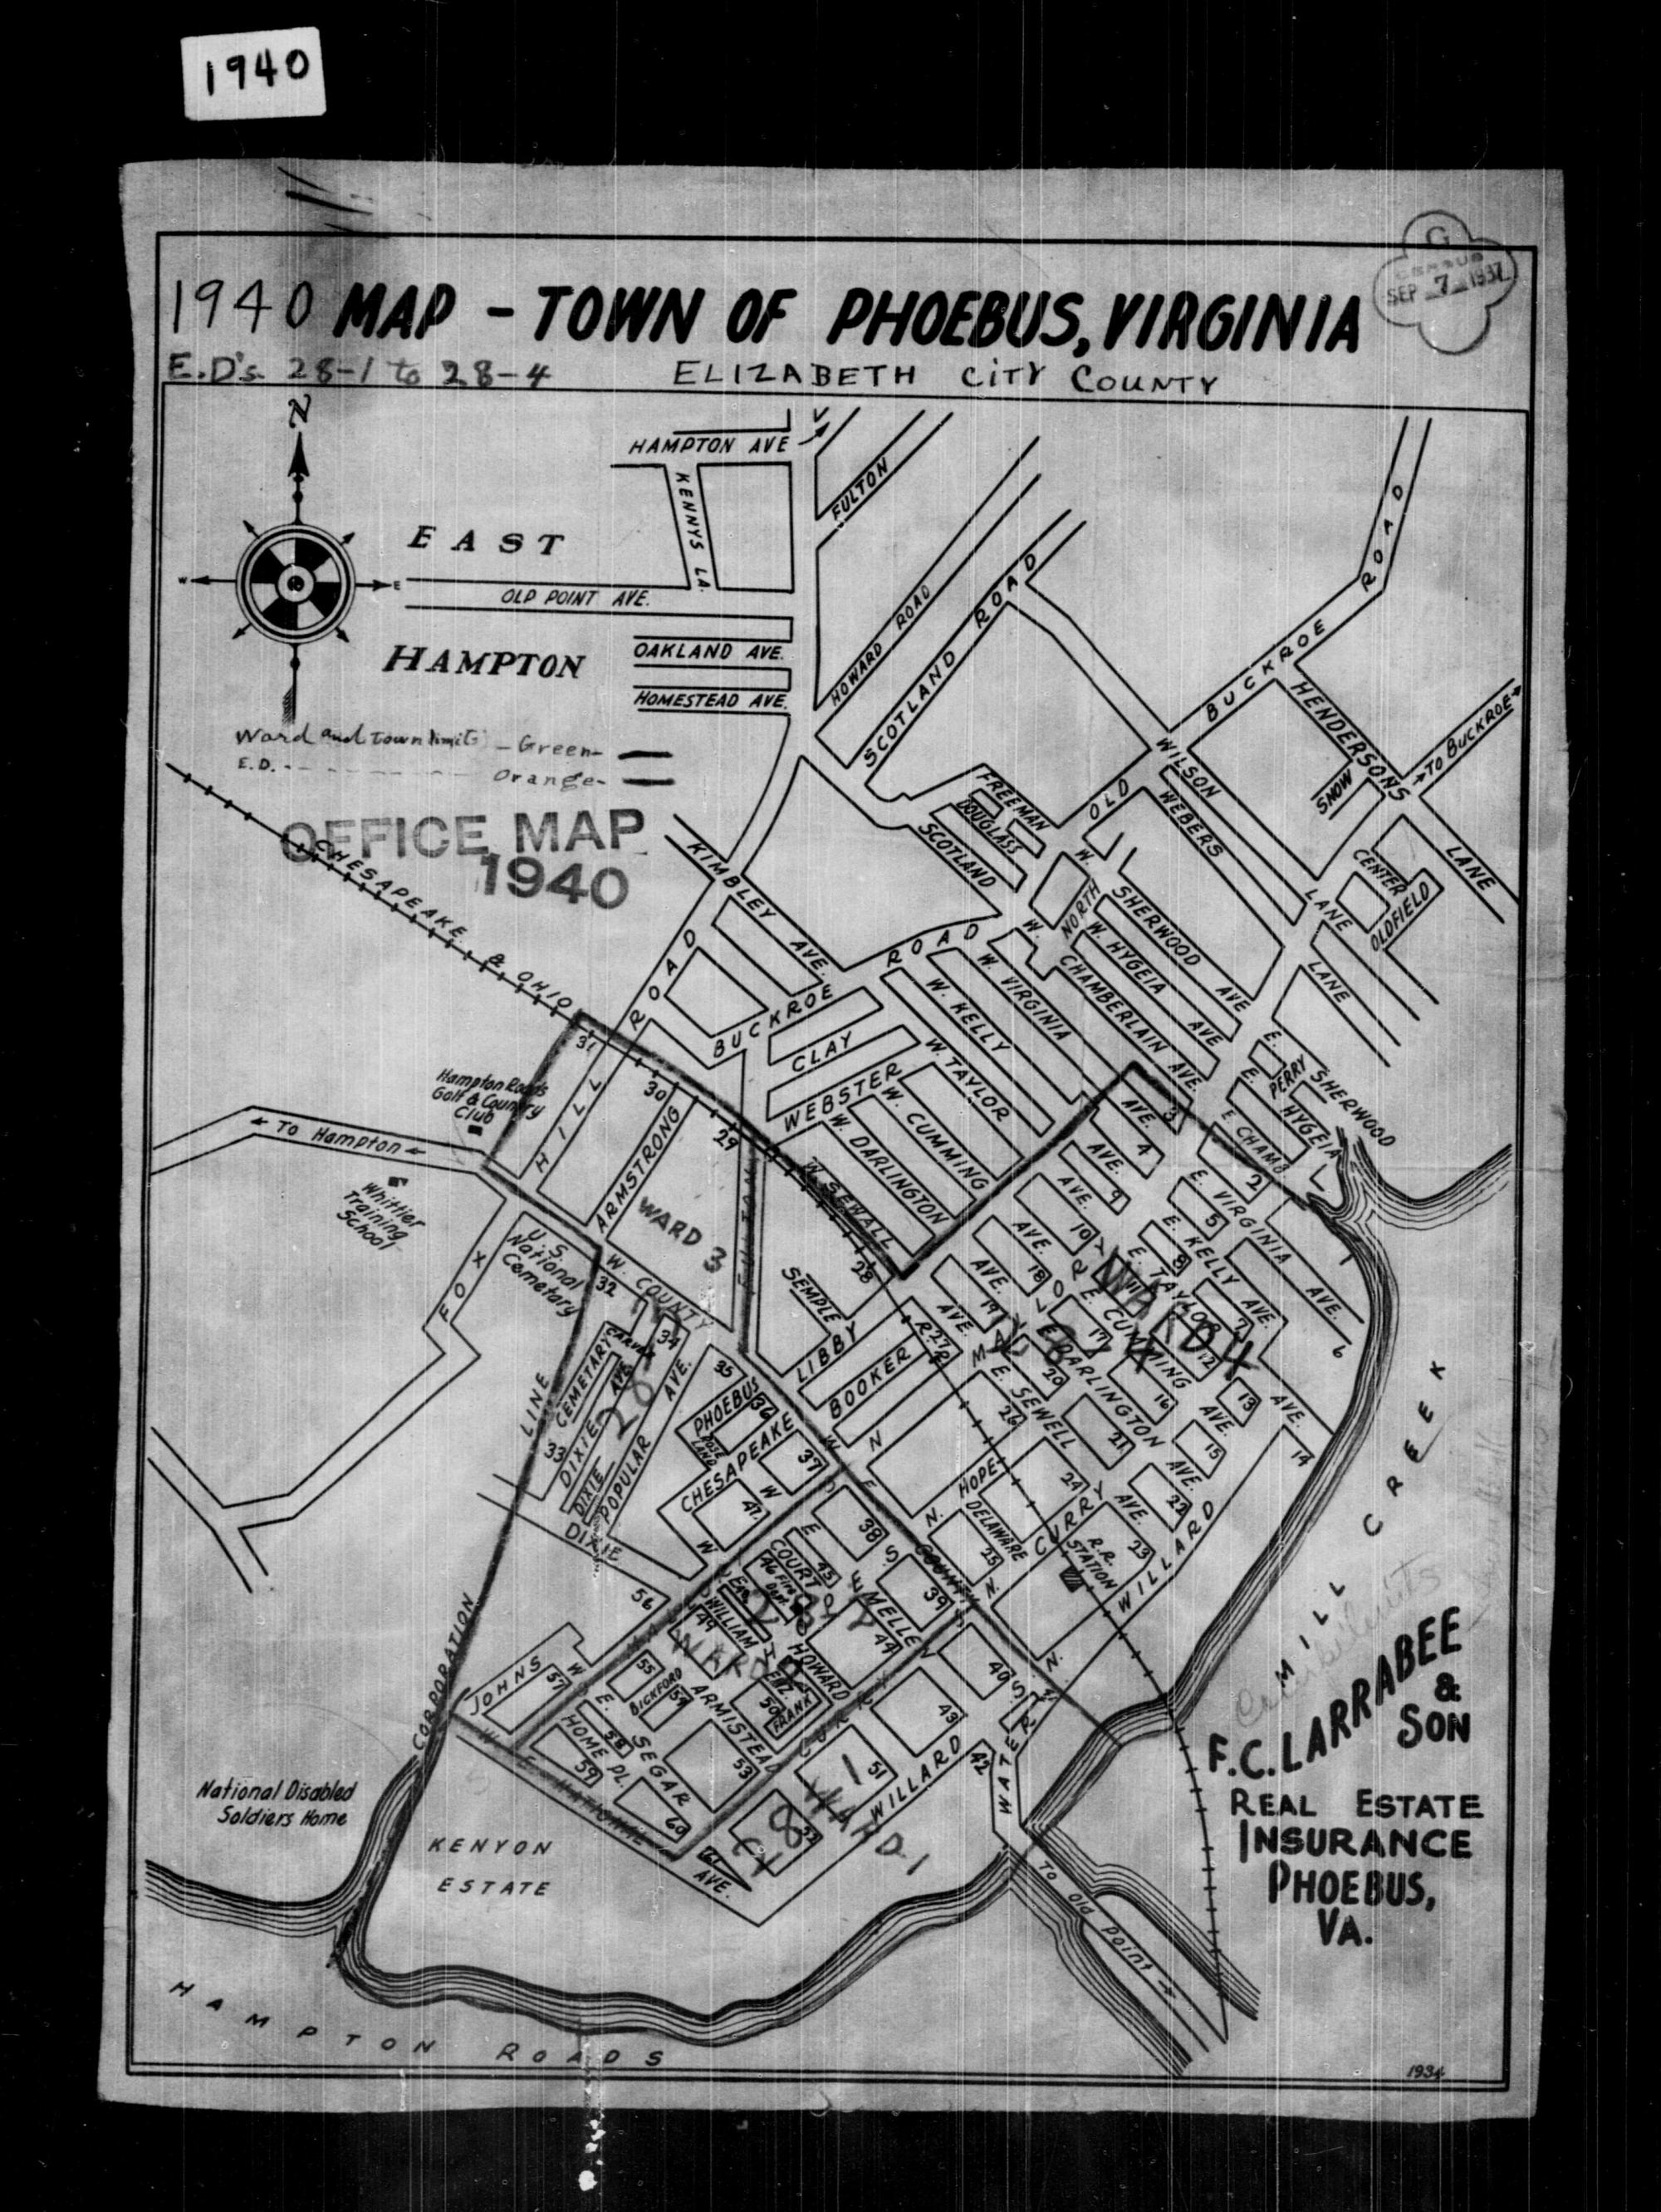 hight resolution of 1940 census enumeration district maps virginia elizabeth city county phoebus ed 28